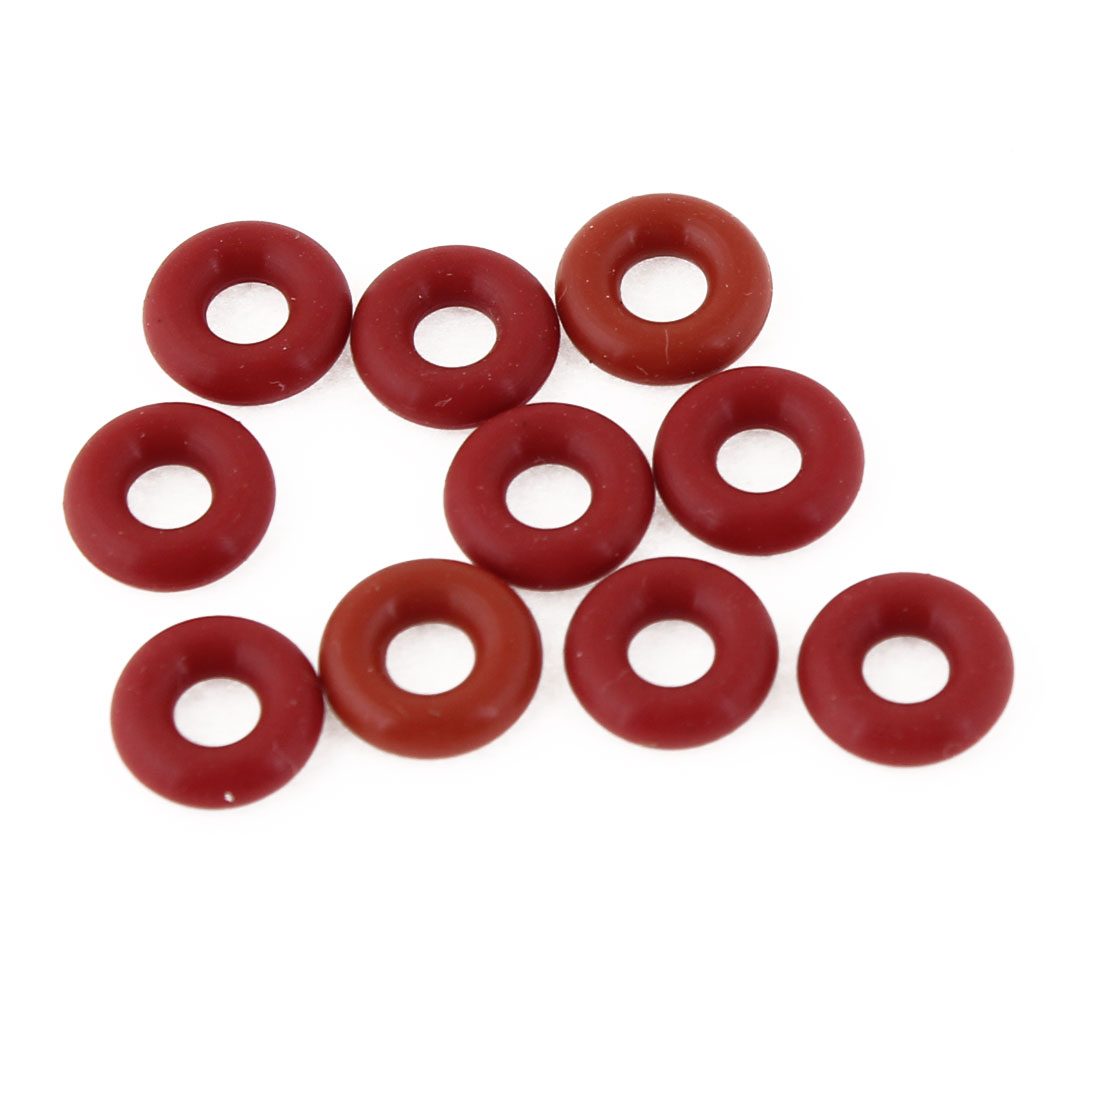 Uxcell 10 Pcs 3Mm Thickness Industrial Rubber O Rings Seals Id . | 10mm | 11mm | 12mm | 13mm | 14mm | 15mm | 4mm | 5mm | 6mm | tamiya cc01 op upgrade metal bearing 15mm 10mm 4mm 11mm 5mm 4mm